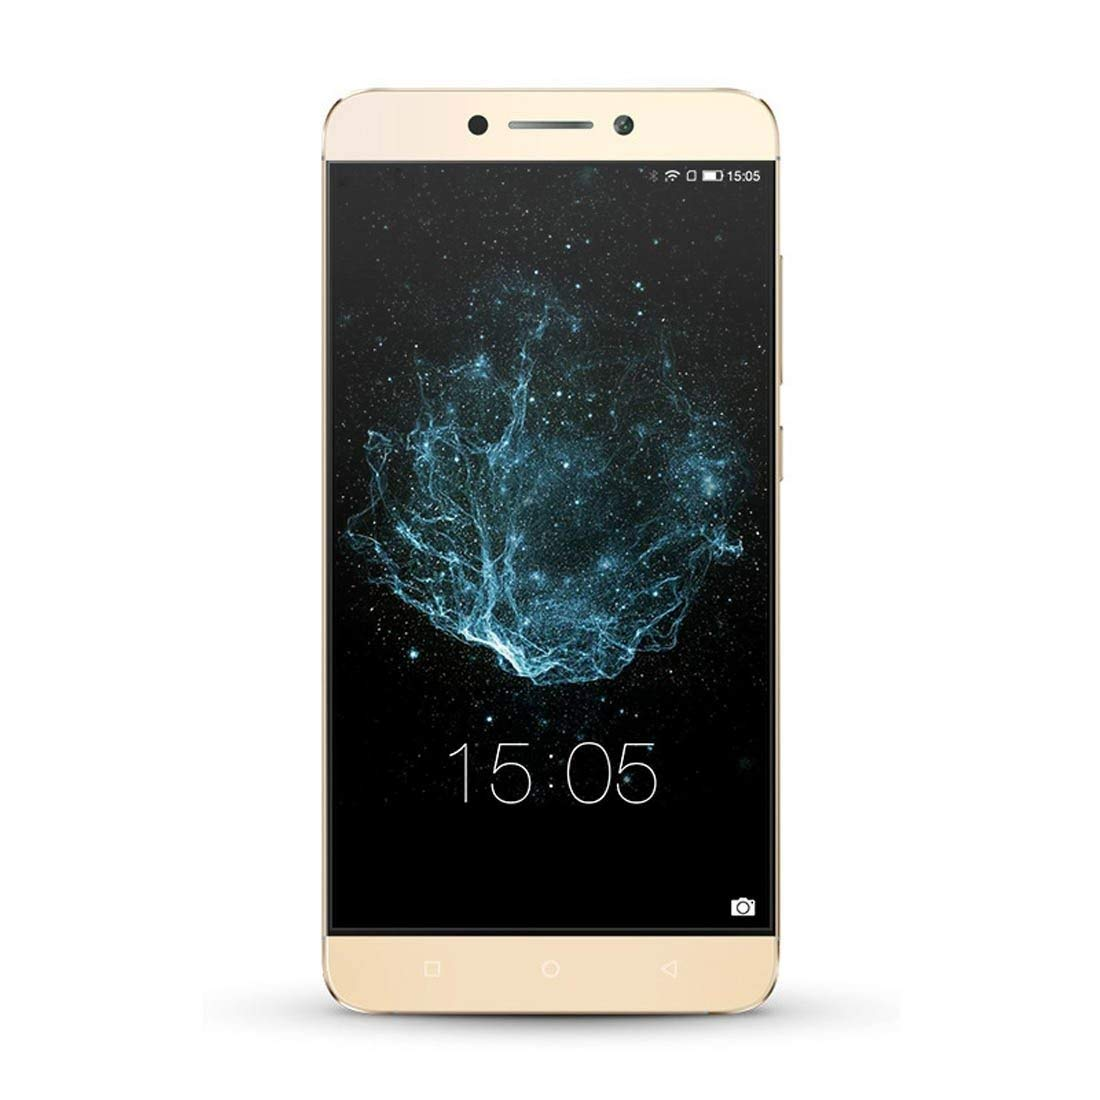 Surya Letv X620 Volte Smartphone with 4GB RAM 32GB ROM 5 5-inch Touchscreen  Display and Fingerprint Sensor Jio 4G Support (Gold)